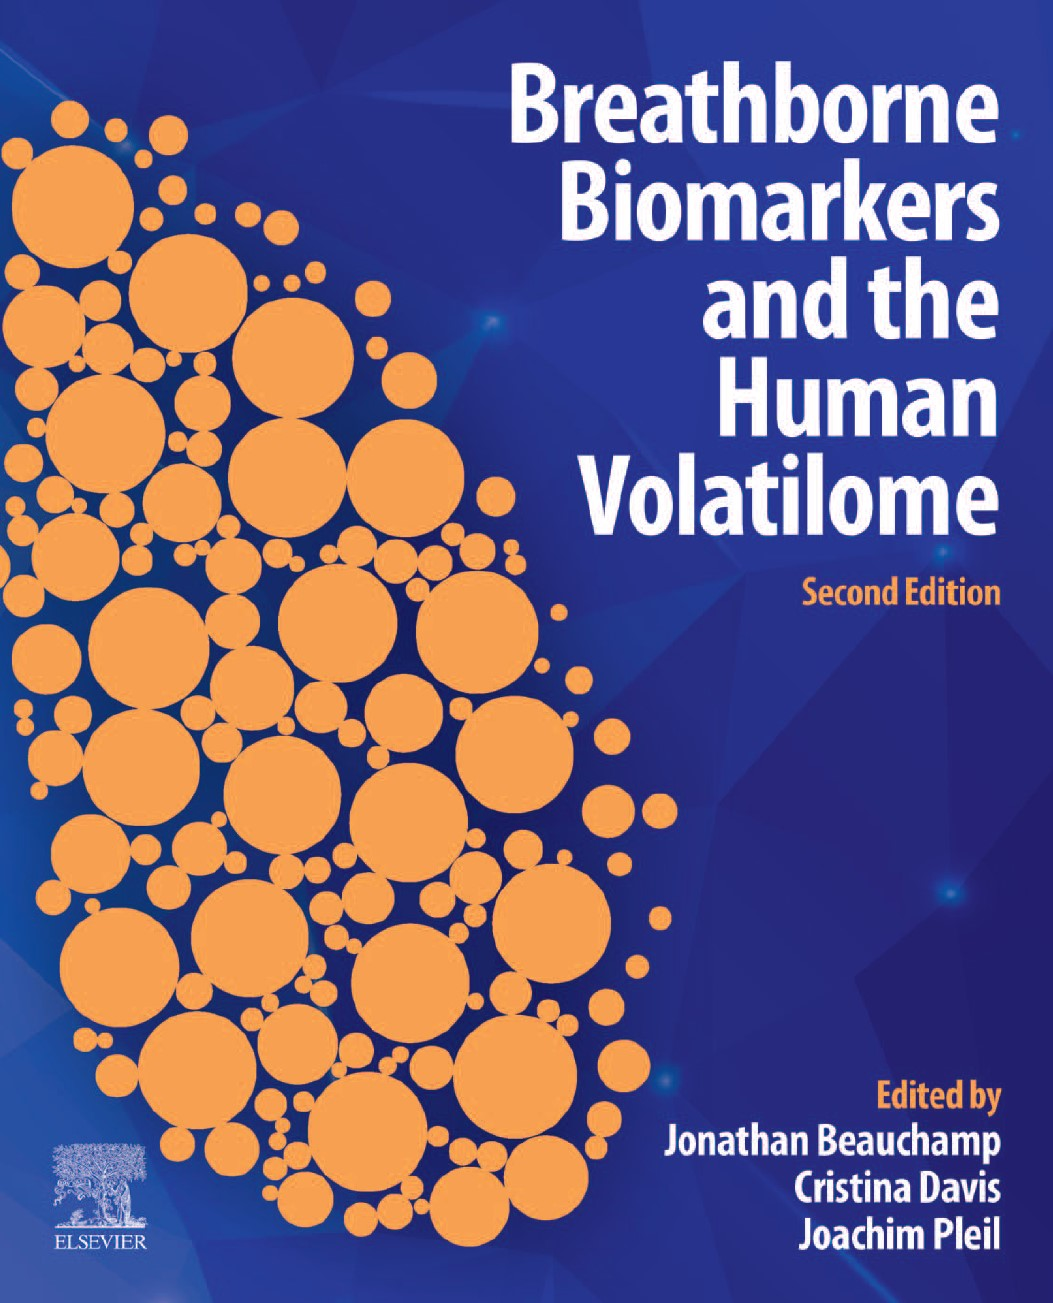 Breathborne Biomarkers and the Human Volatilome, 2020